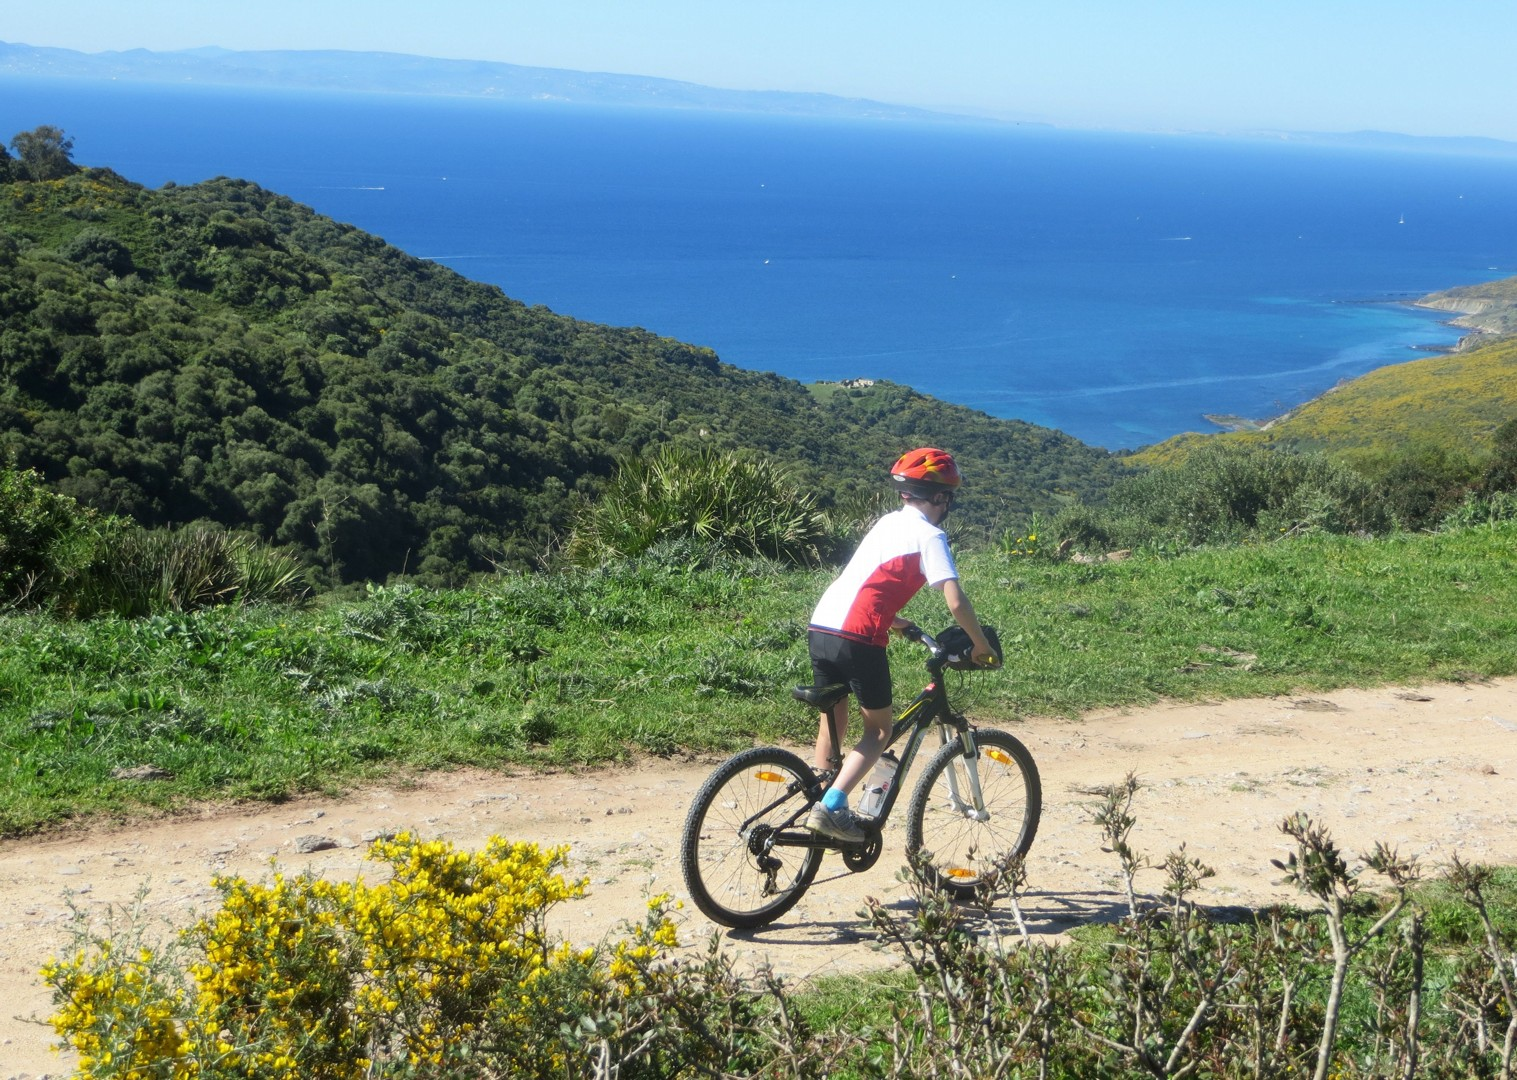 self-guided-family-cycling-holiday-southern-spain.jpg - Southern Spain - Coastal Adventurer - Self-Guided Family Cycling Holiday - Family Cycling